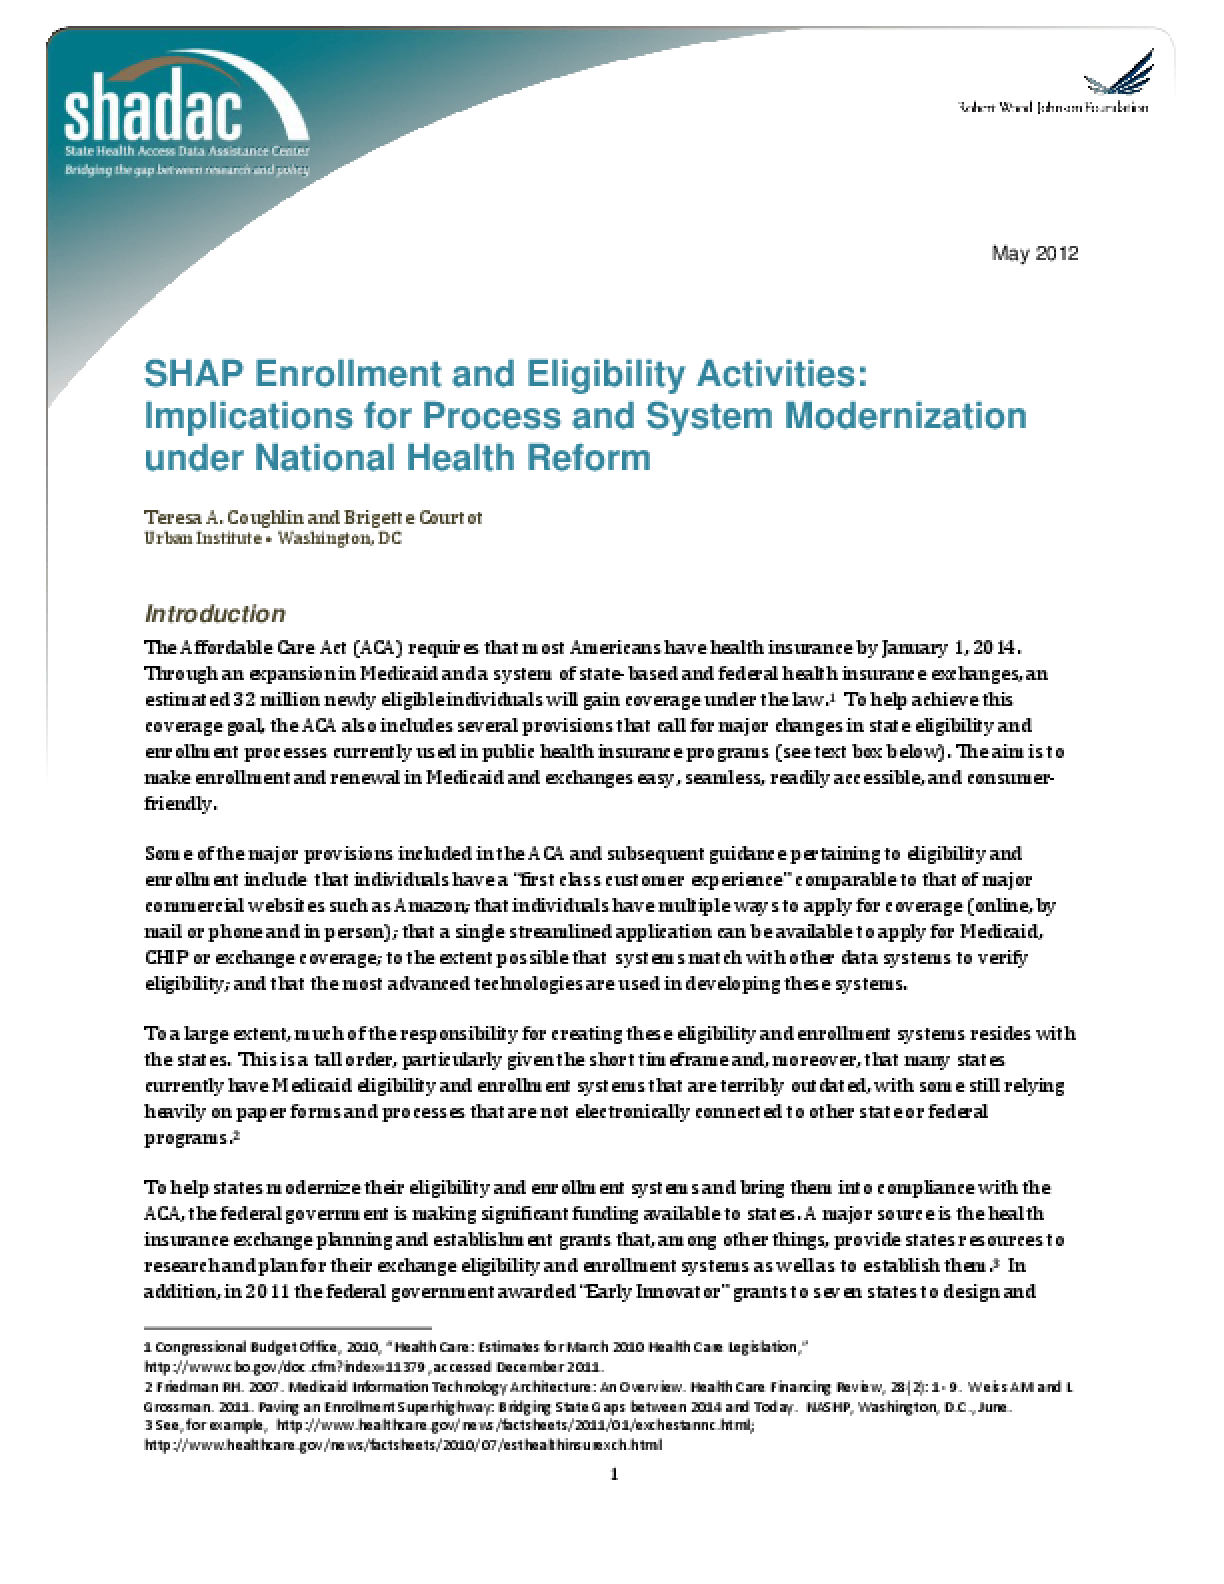 SHAP Enrollment and Eligibility Activities: Implications for Process and System Modernization Under National Health Reform